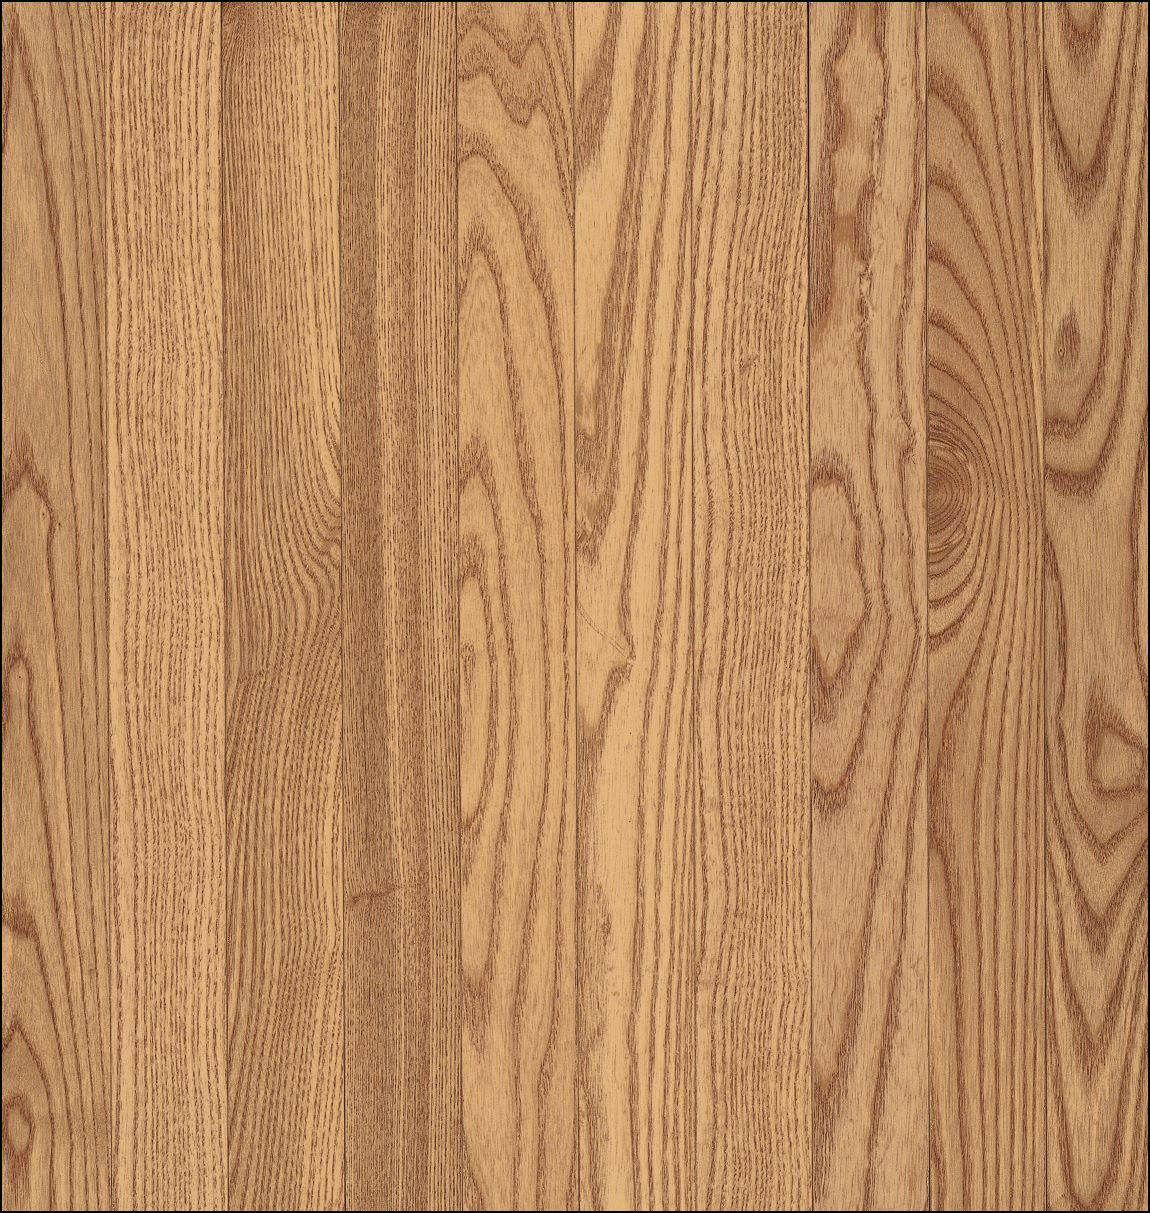 bruce oak hardwood flooring reviews of laminate flooring reviews flooring ideas pertaining to laminate flooring stair nose molding stock red oak hardwood flooring beige c8310 by bruce flooring of